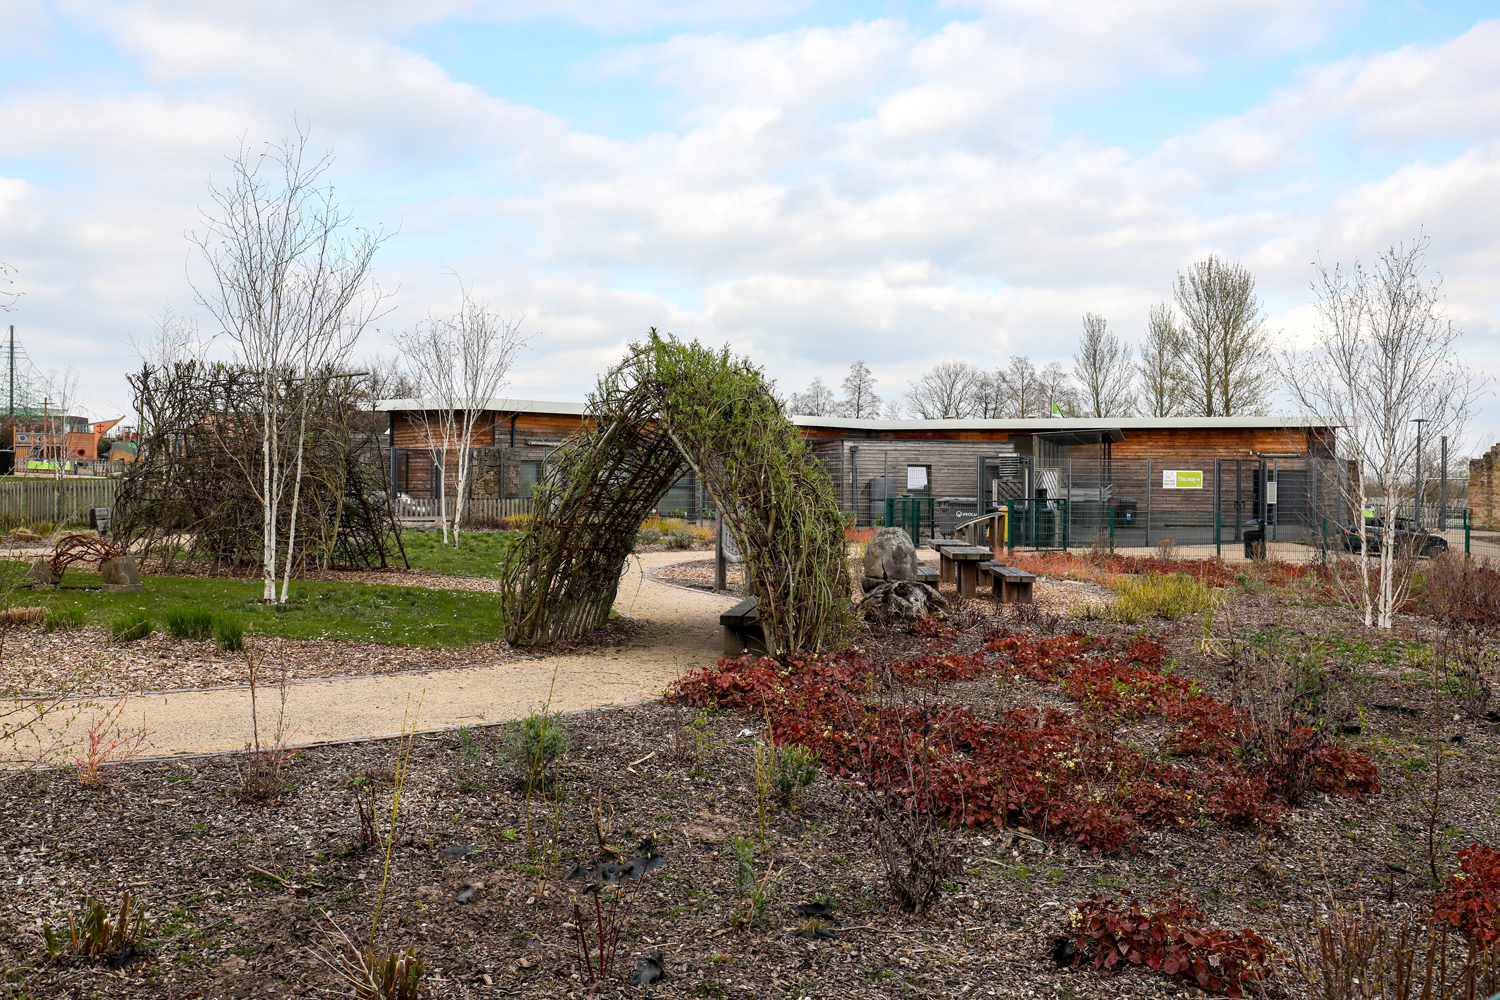 Picture of a community garden in Telford Town Park